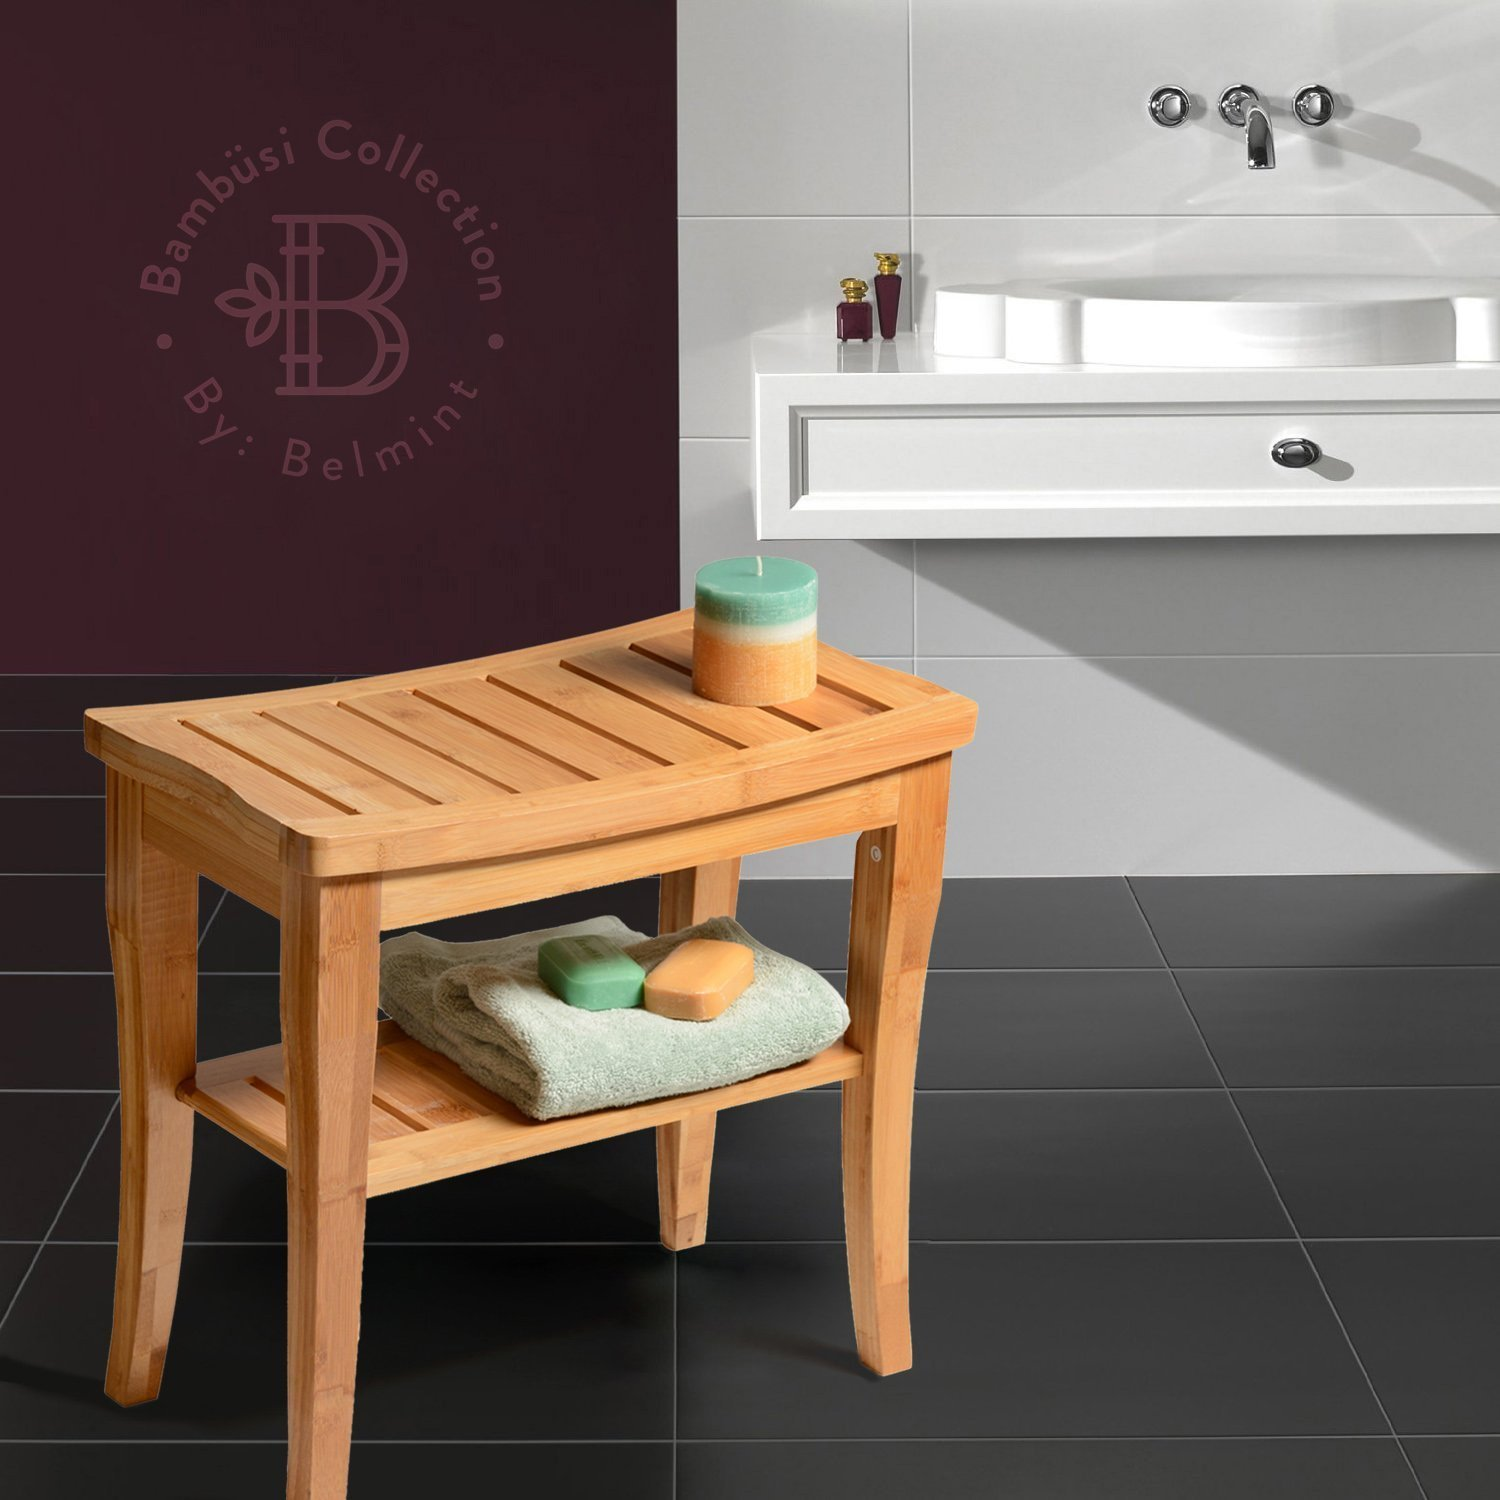 Bamboo Shower Bench Seat Wooden Spa Bench Stool with Storage Shelf, Bath Seat Bench Stool Perfect for Indoor or Outdoor. By Bambusi by Bambüsi (Image #7)